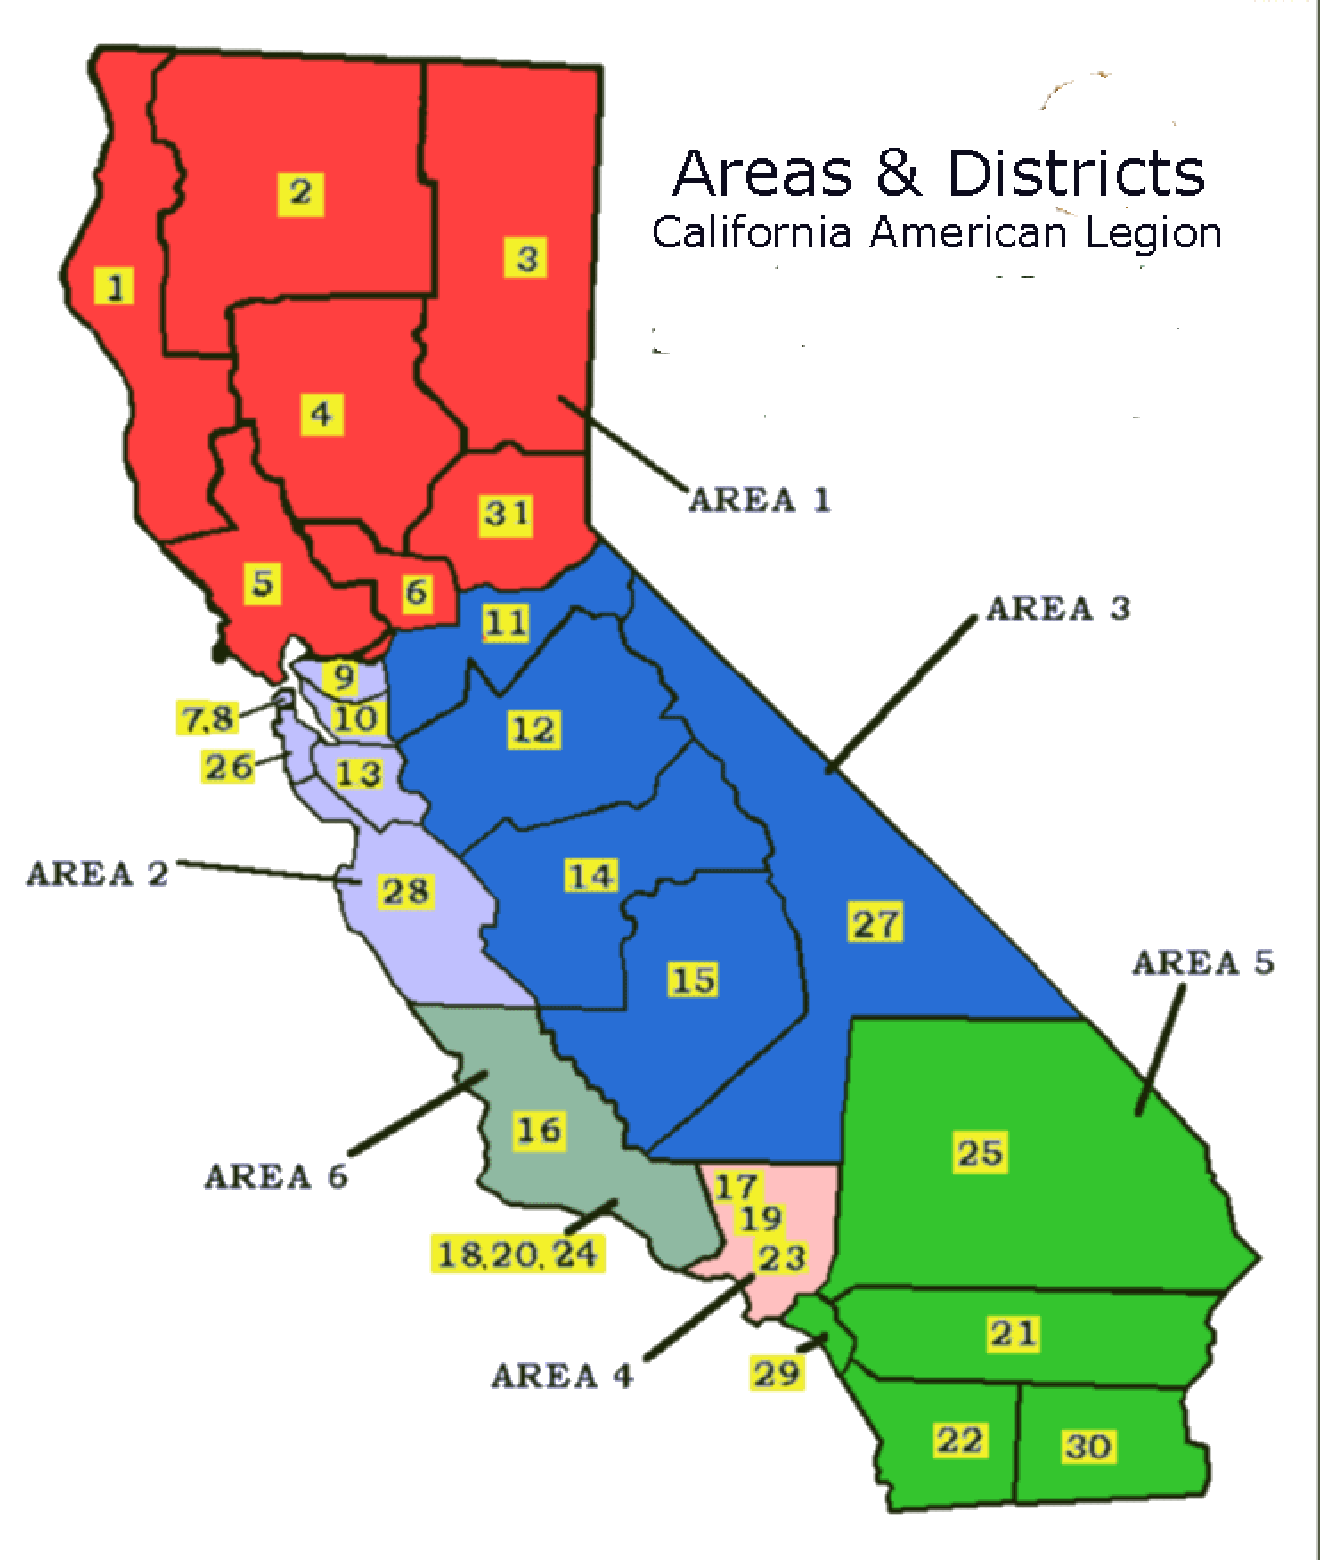 Areas & Districts